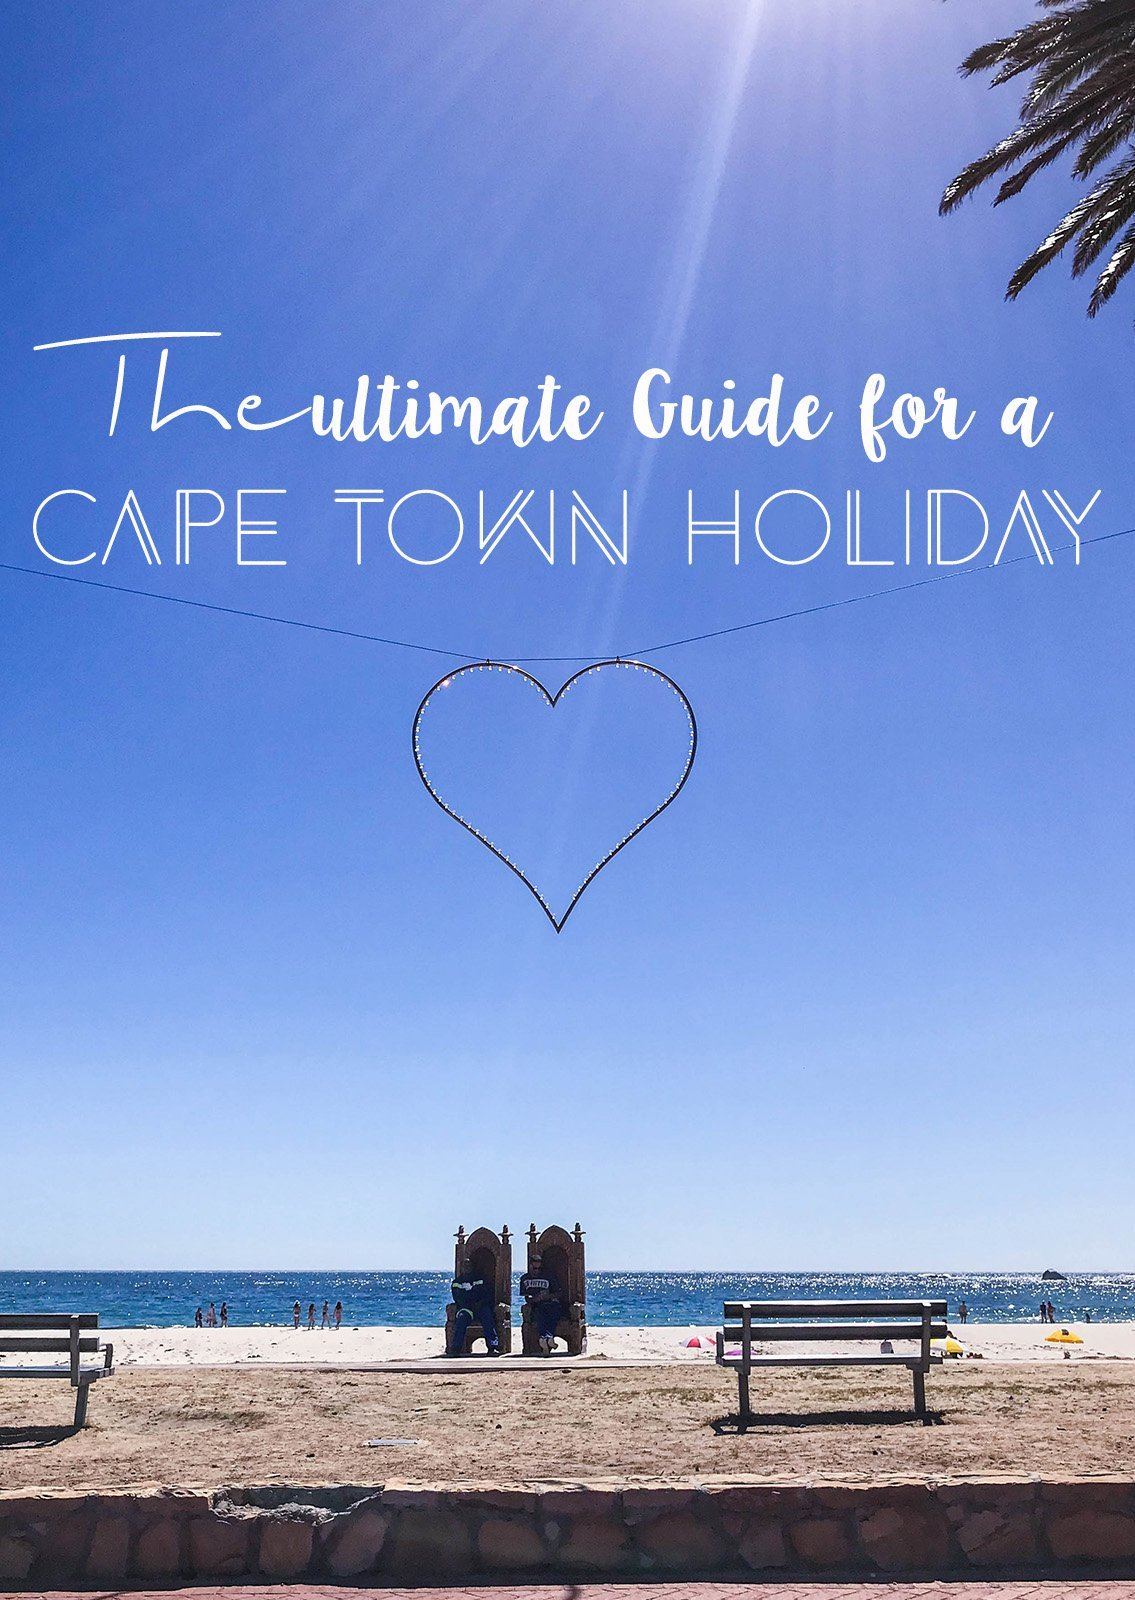 Planning a Cape Town holiday? A very practical guide on where to stay, what to do, and what to expect in Cape Town, South Africa's Mothercity. #southafria #visitcapetown #capetown